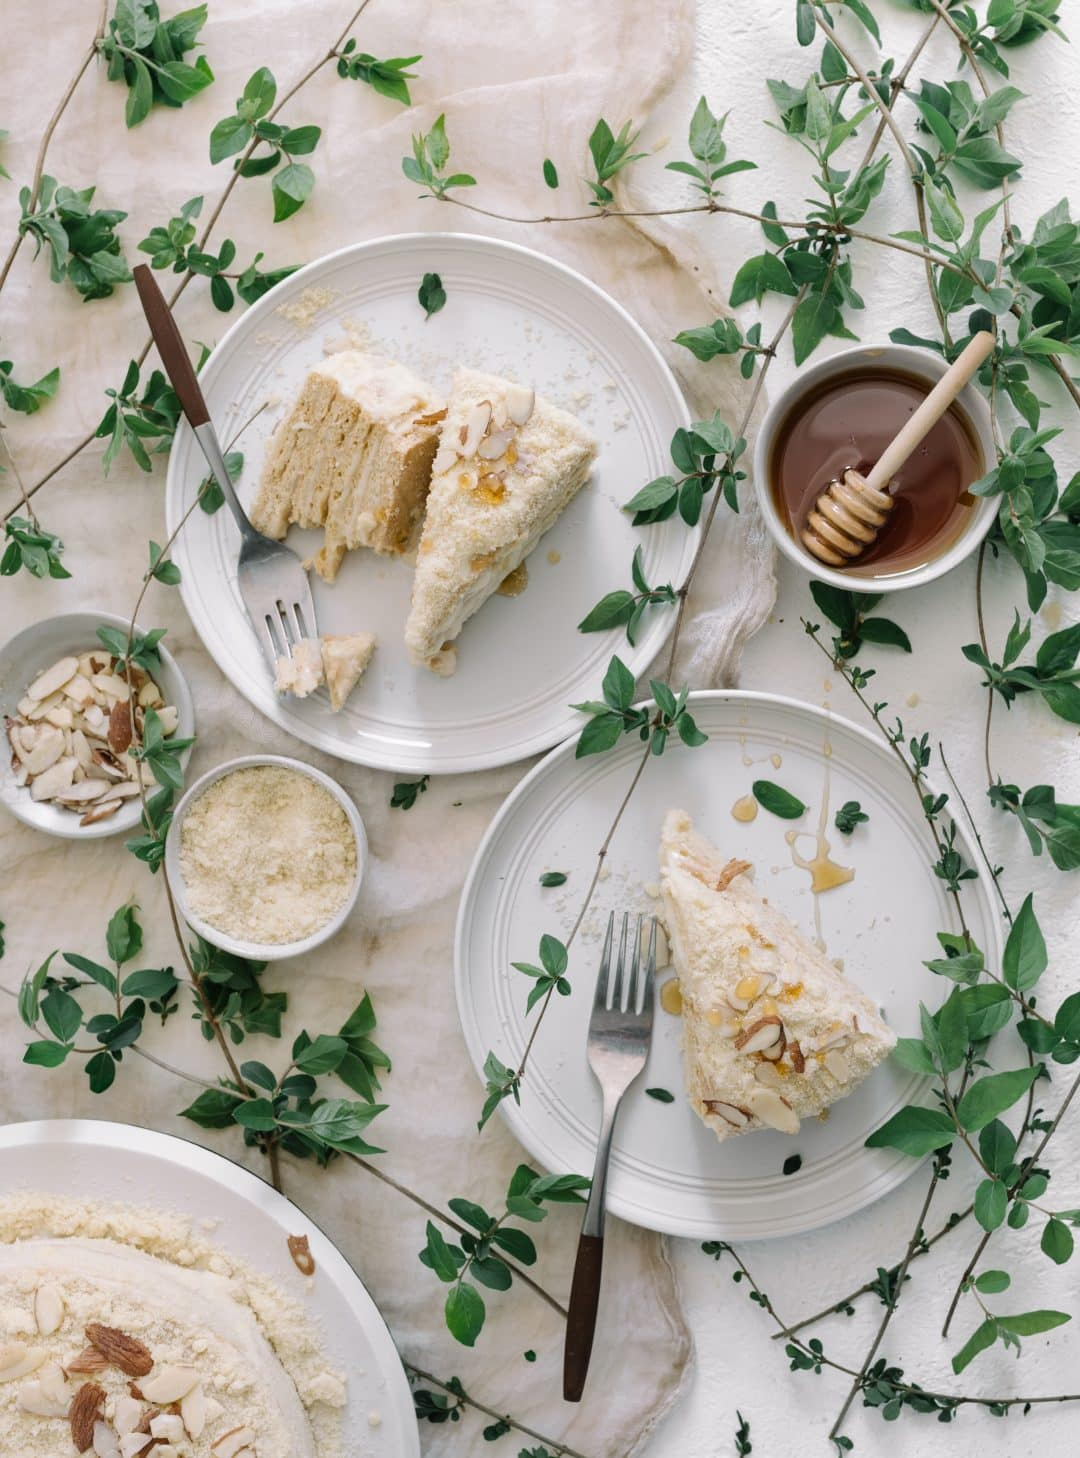 russian honey cake slices on table with honeysuckle vine